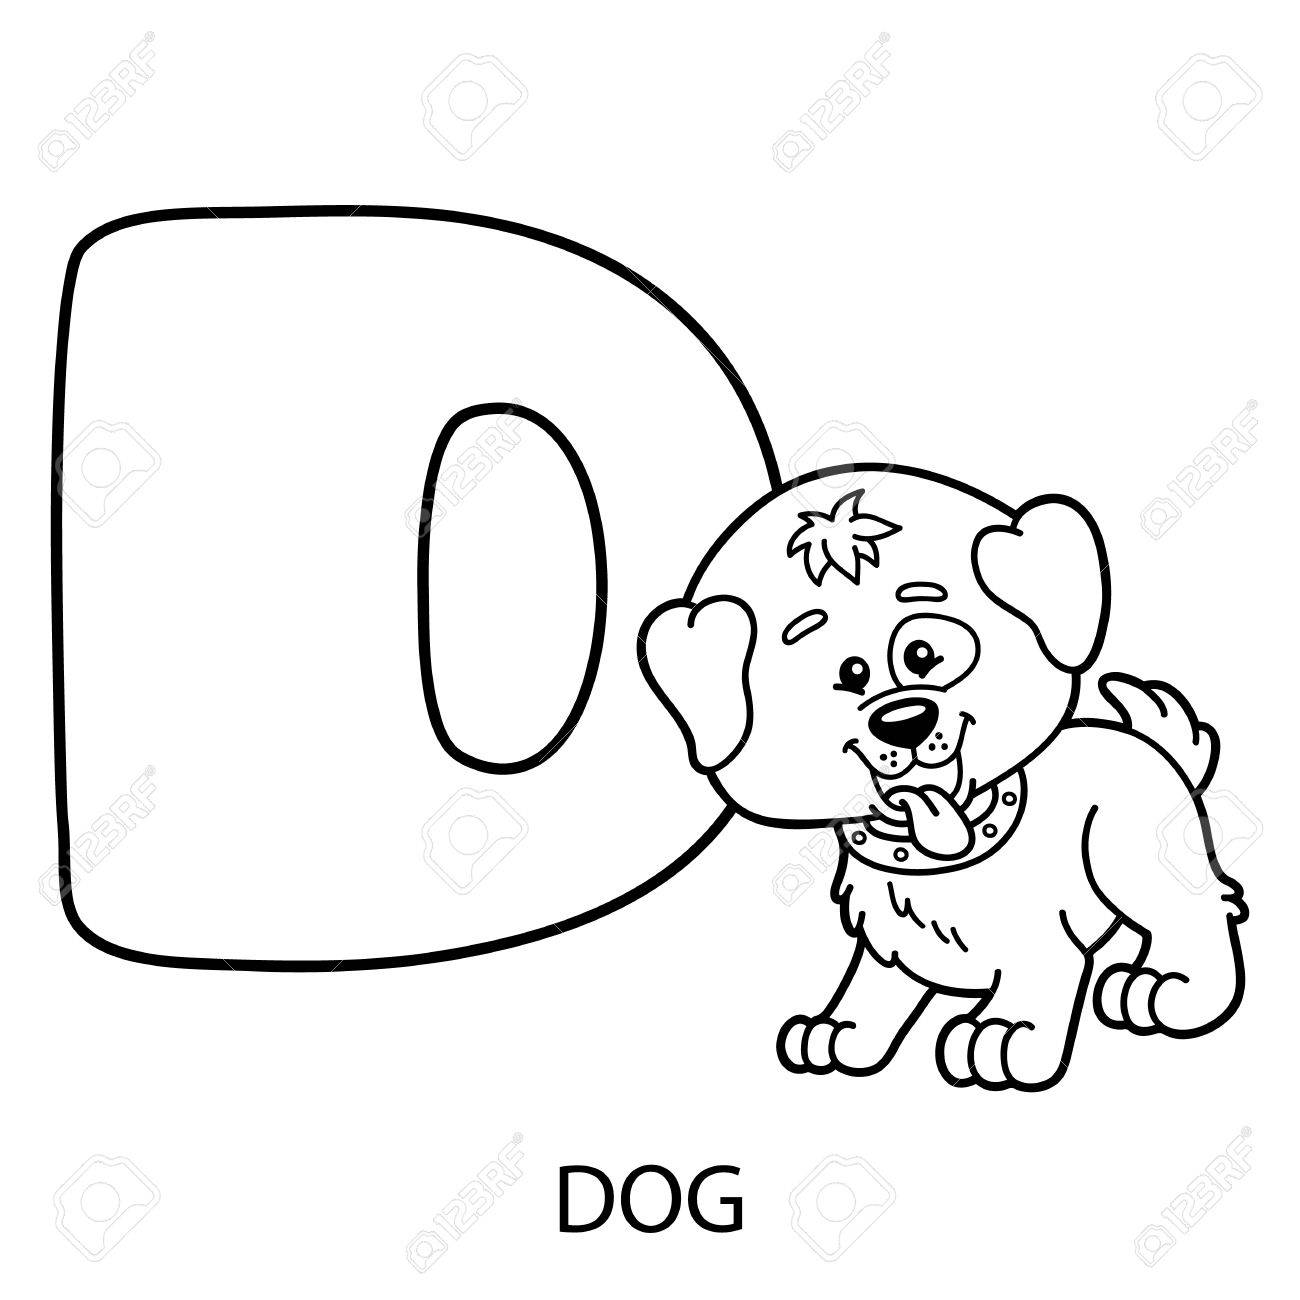 animal alphabet coloring page. Vector illustration of educational..